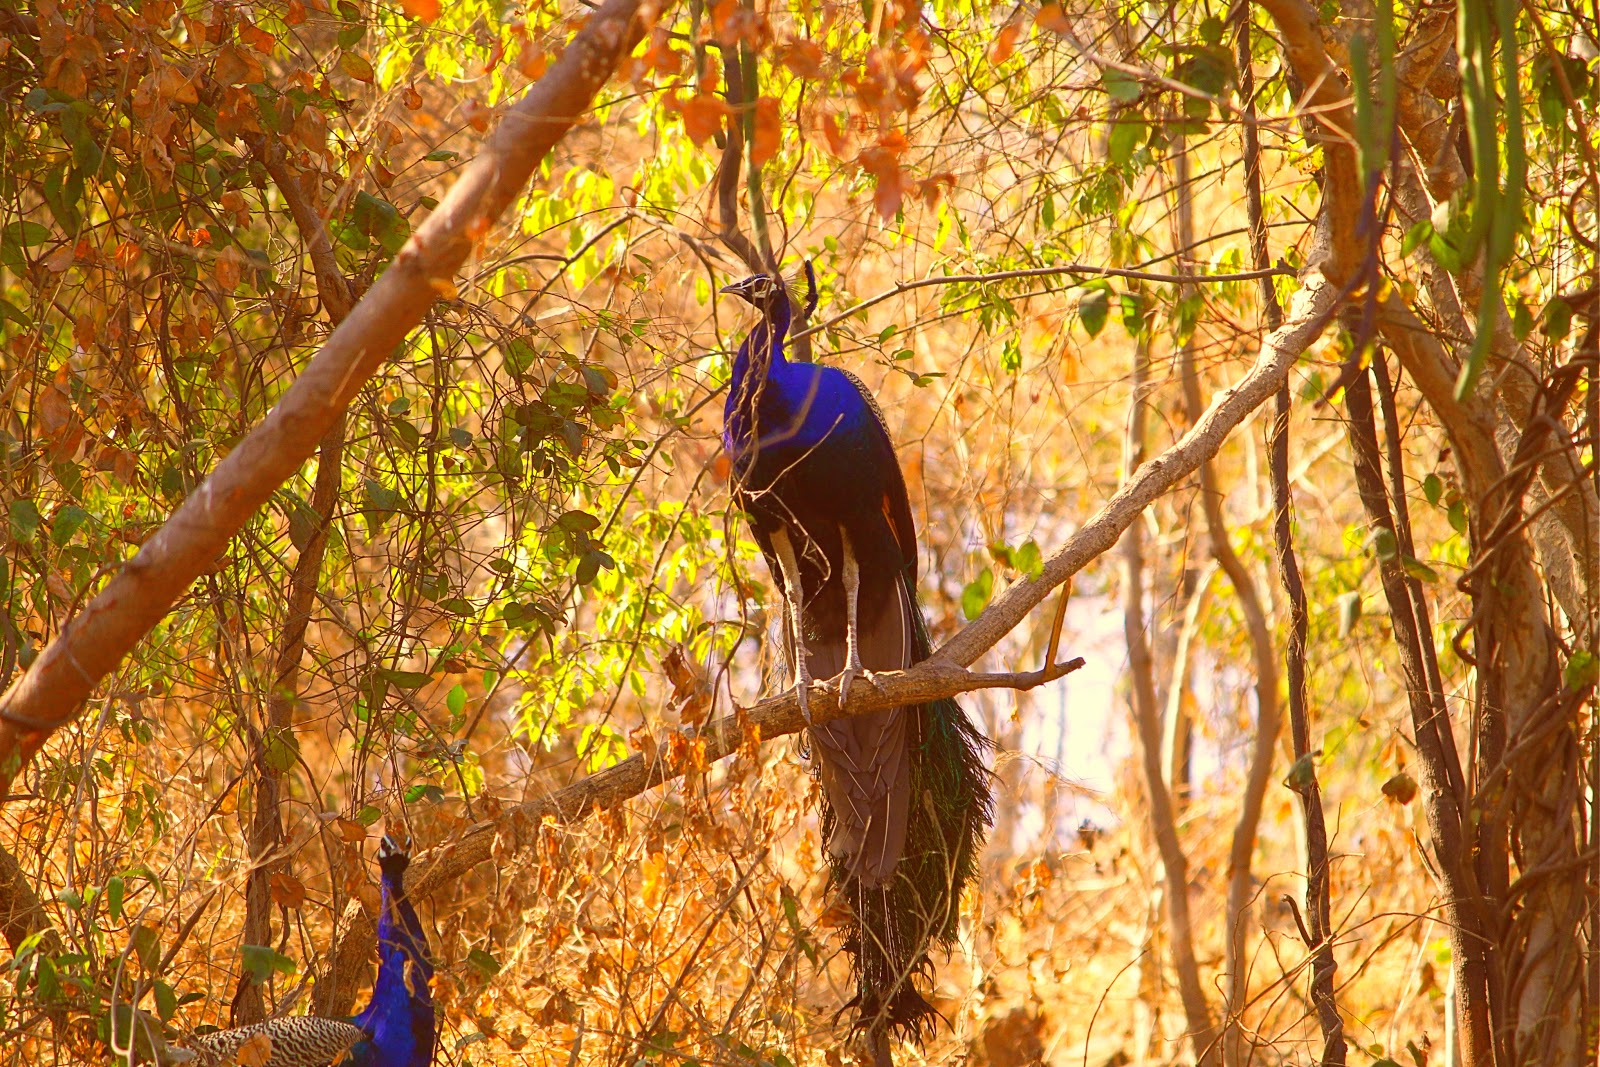 peafowls-in-forest-images